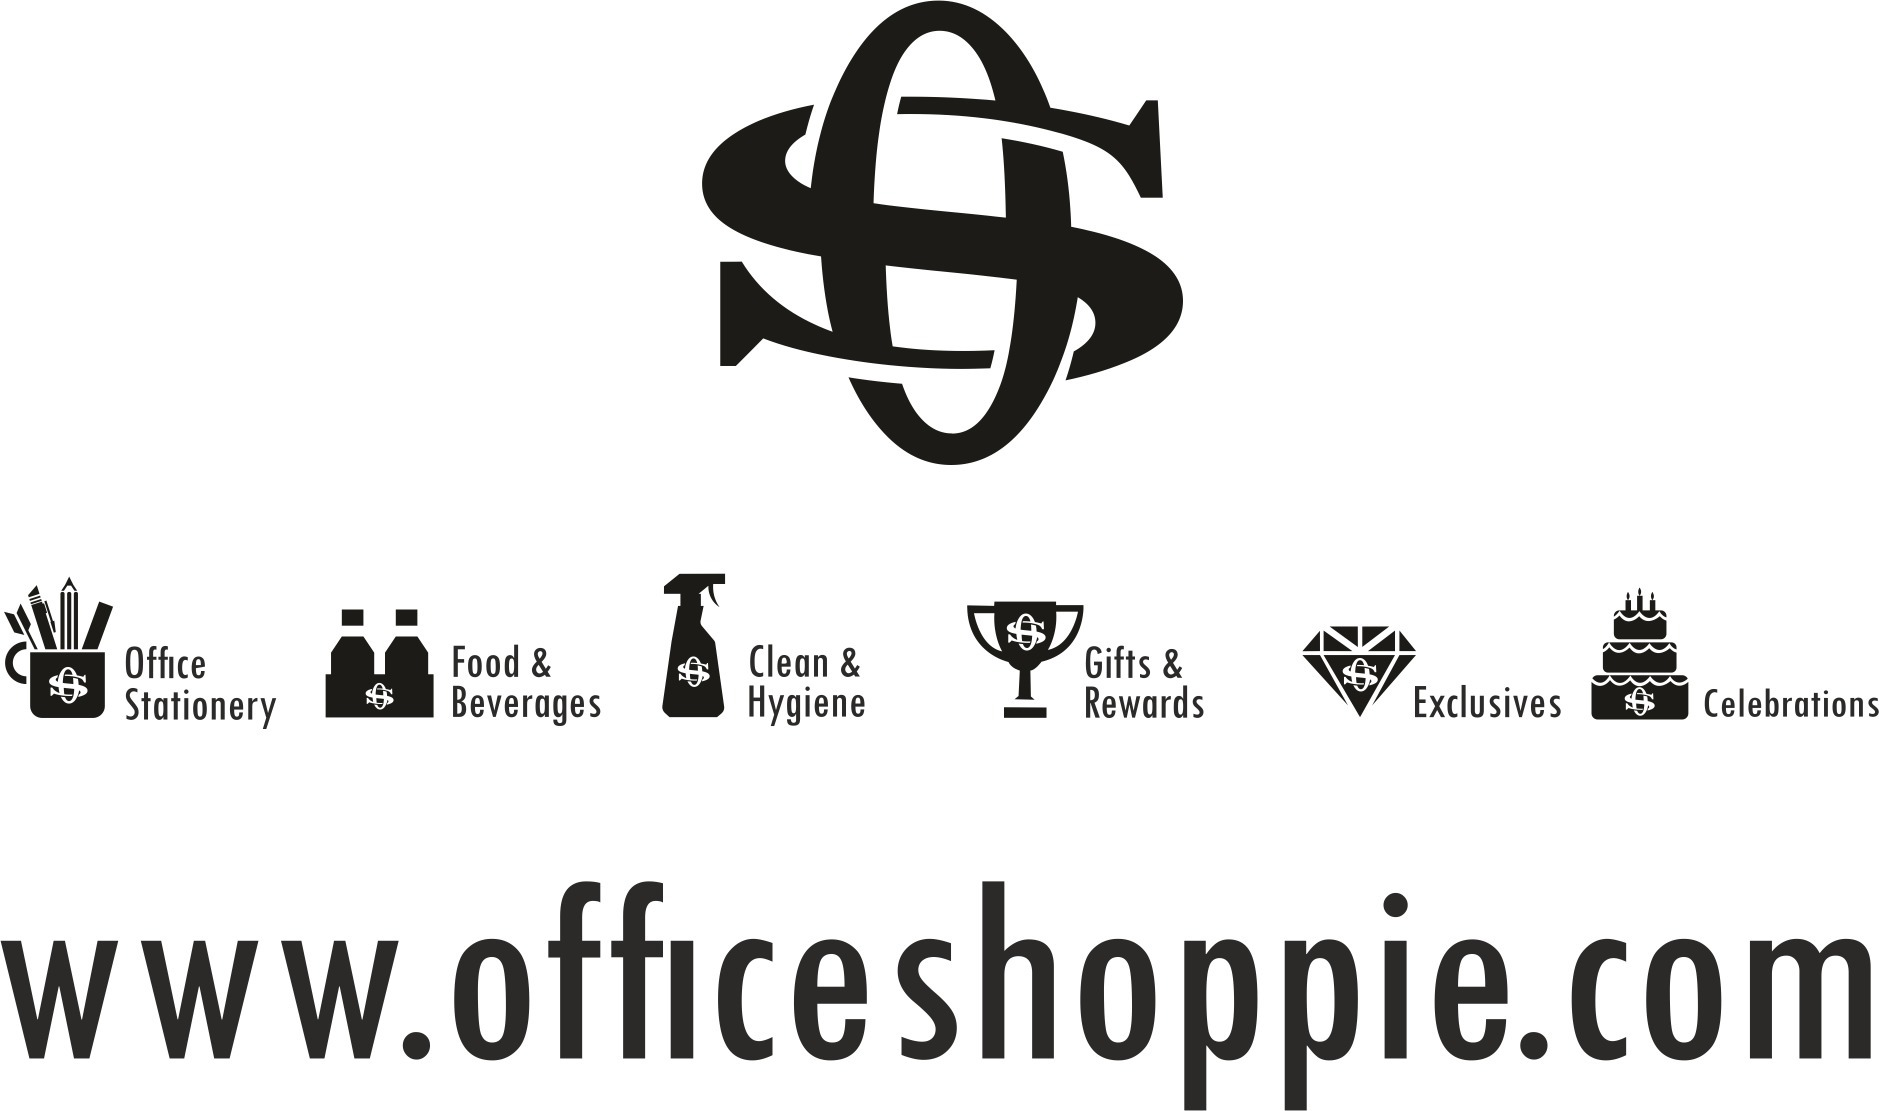 officeshoppie (@officeshoppie) Cover Image